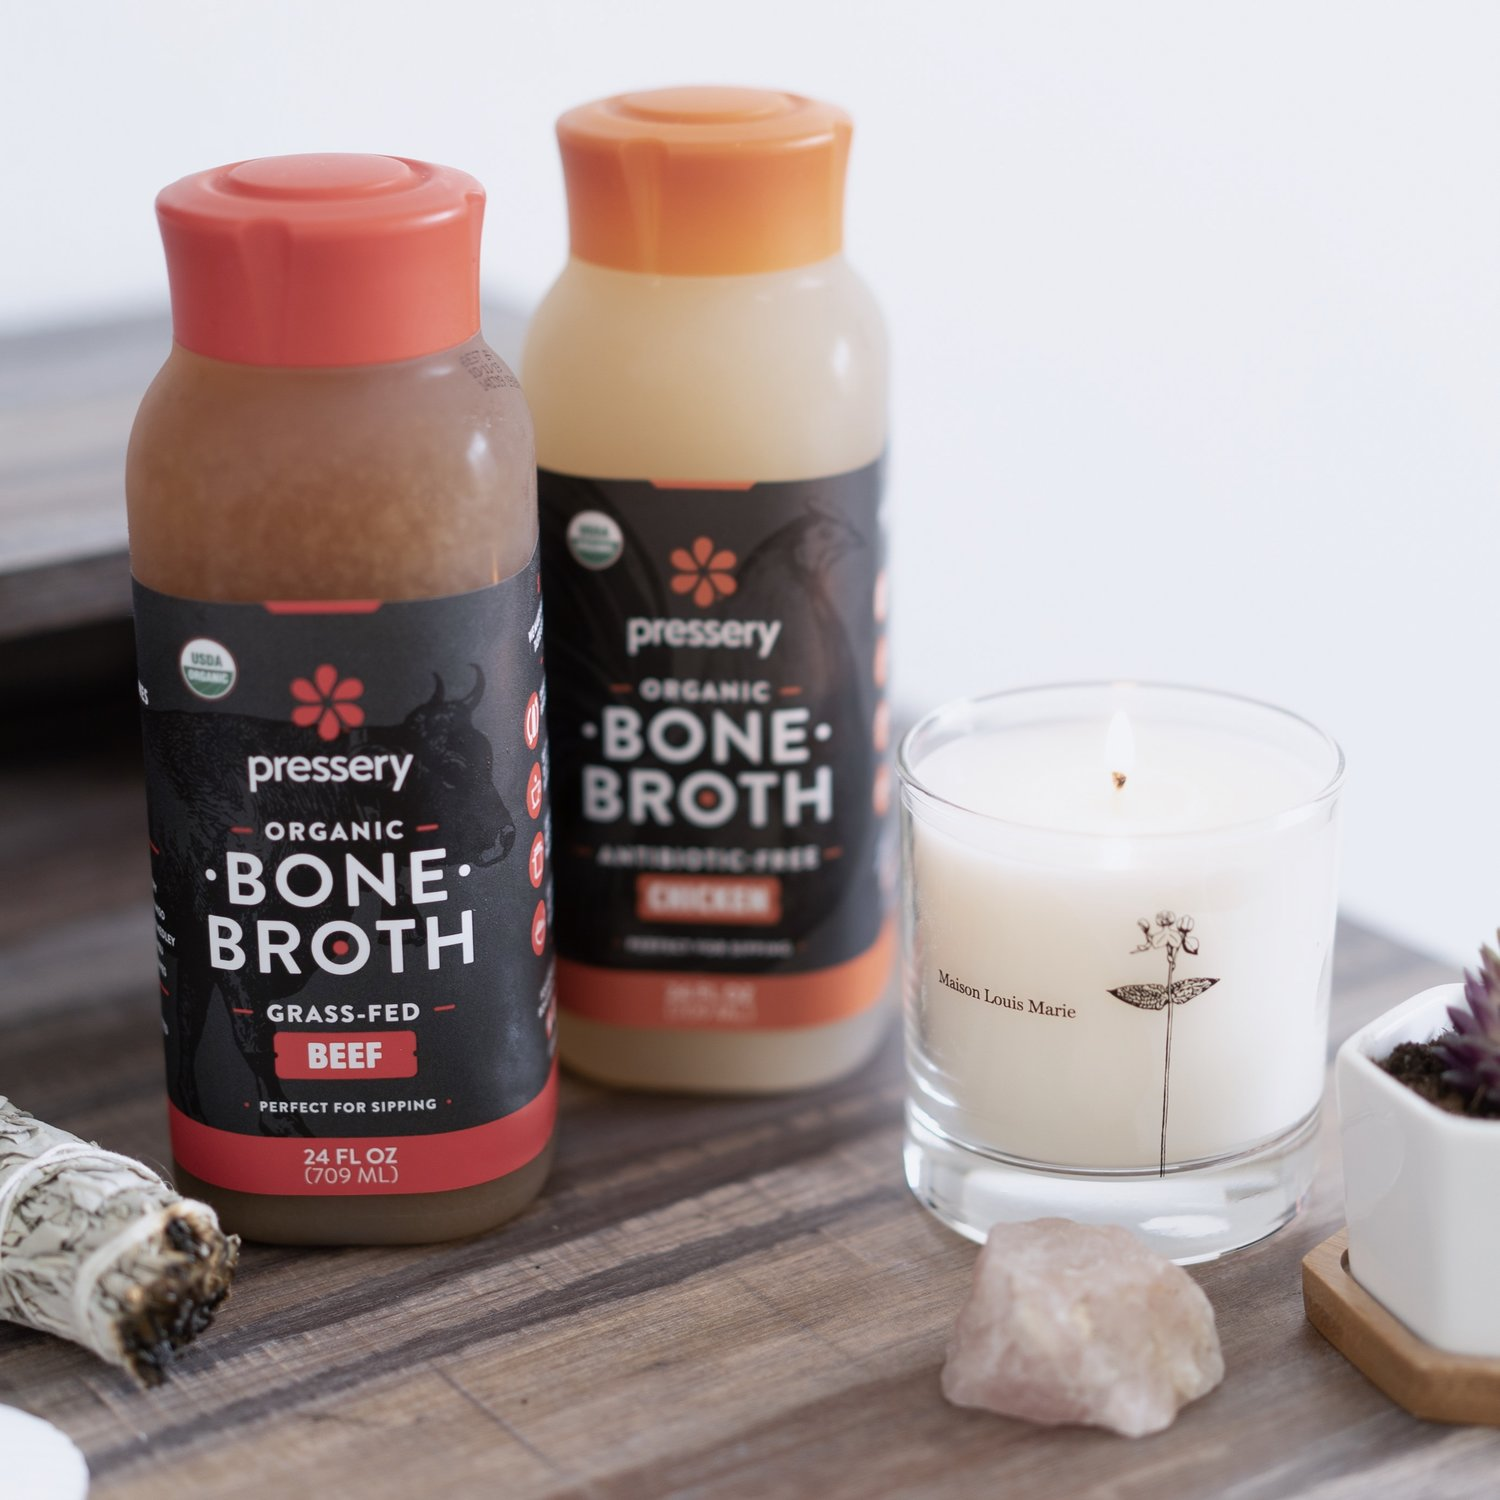 Bone broth comes in many forms, including fresh, frozen, shelf-stable, powdered, & concentrate. Read more about choosing the right type of broth for you  here .